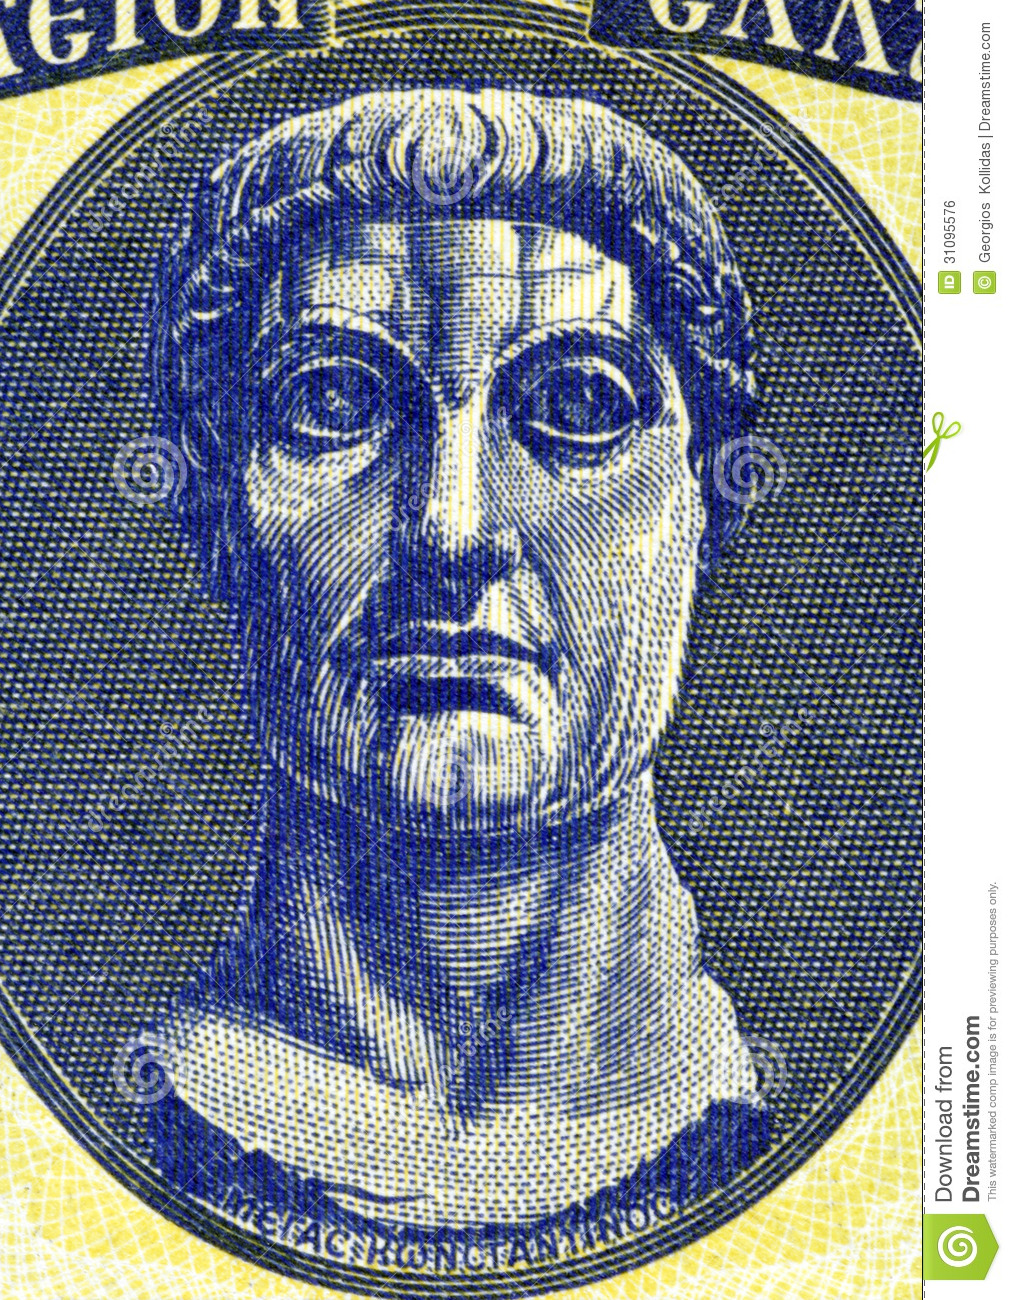 constantine christianity essay In the fourth century emperor constantine favored christianity over paganism in the roman empire by adding christians to his argumentative essay writing service.